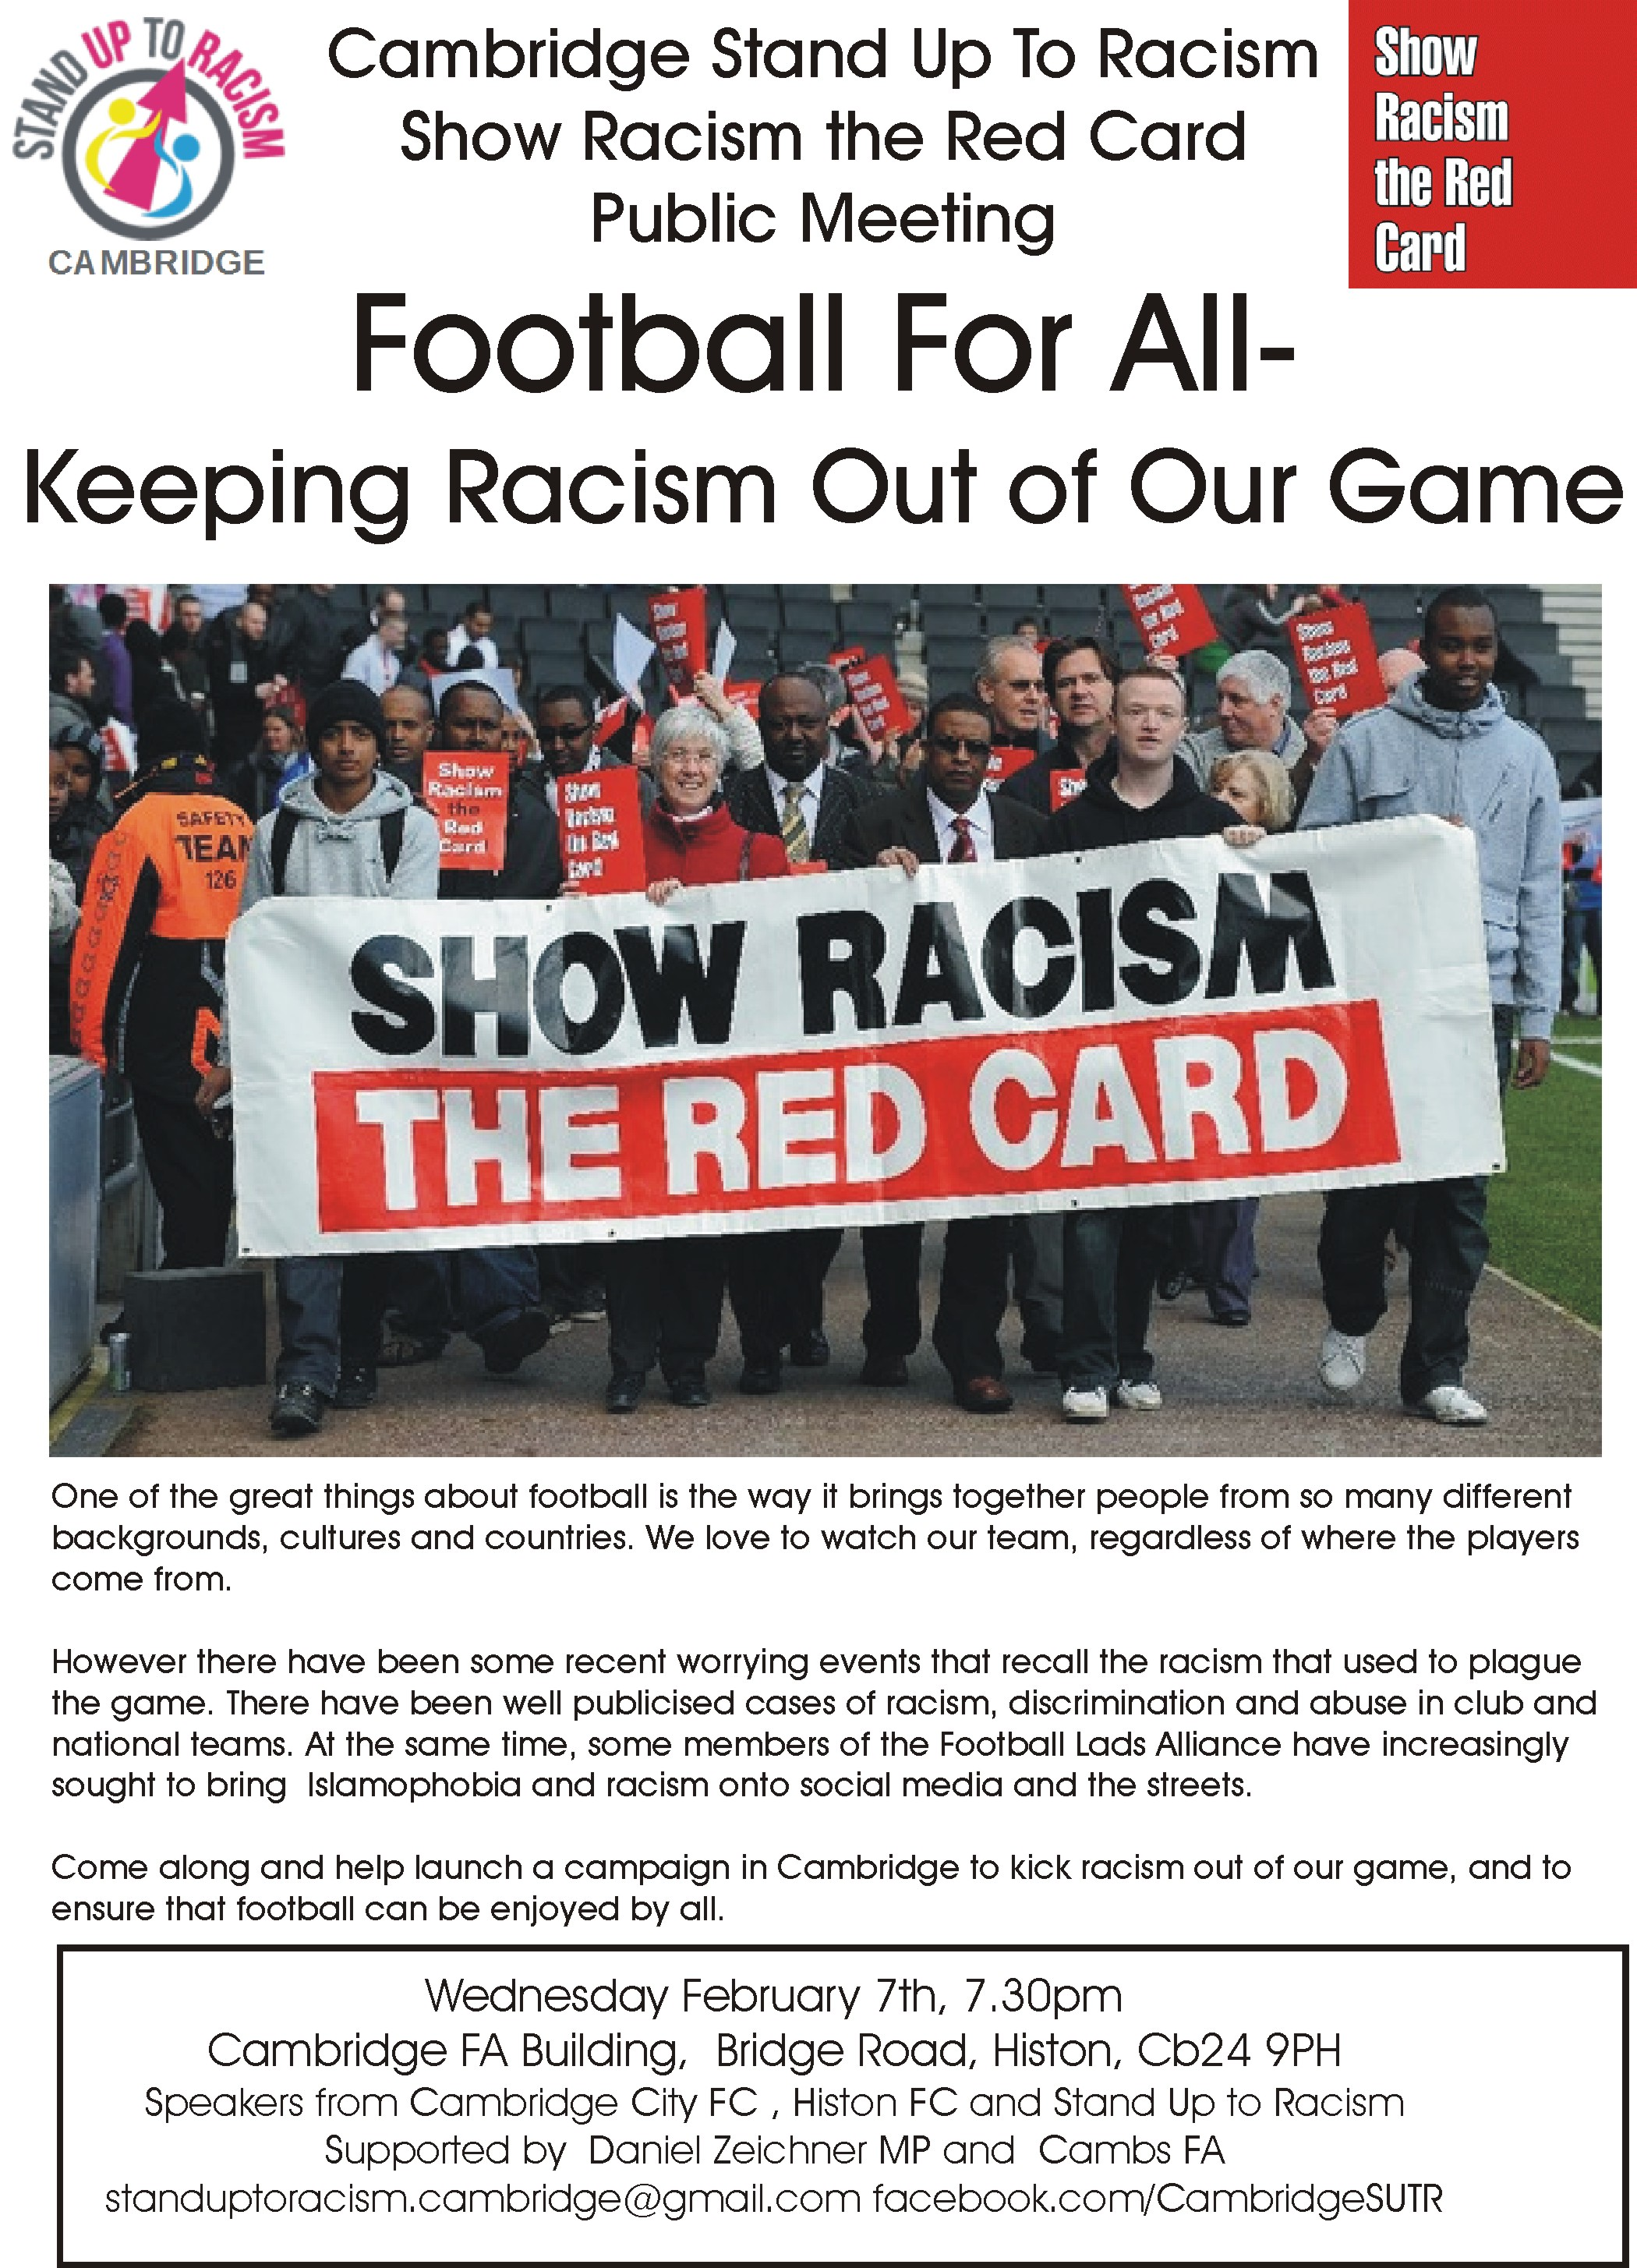 Cambs Stand Up To Racism